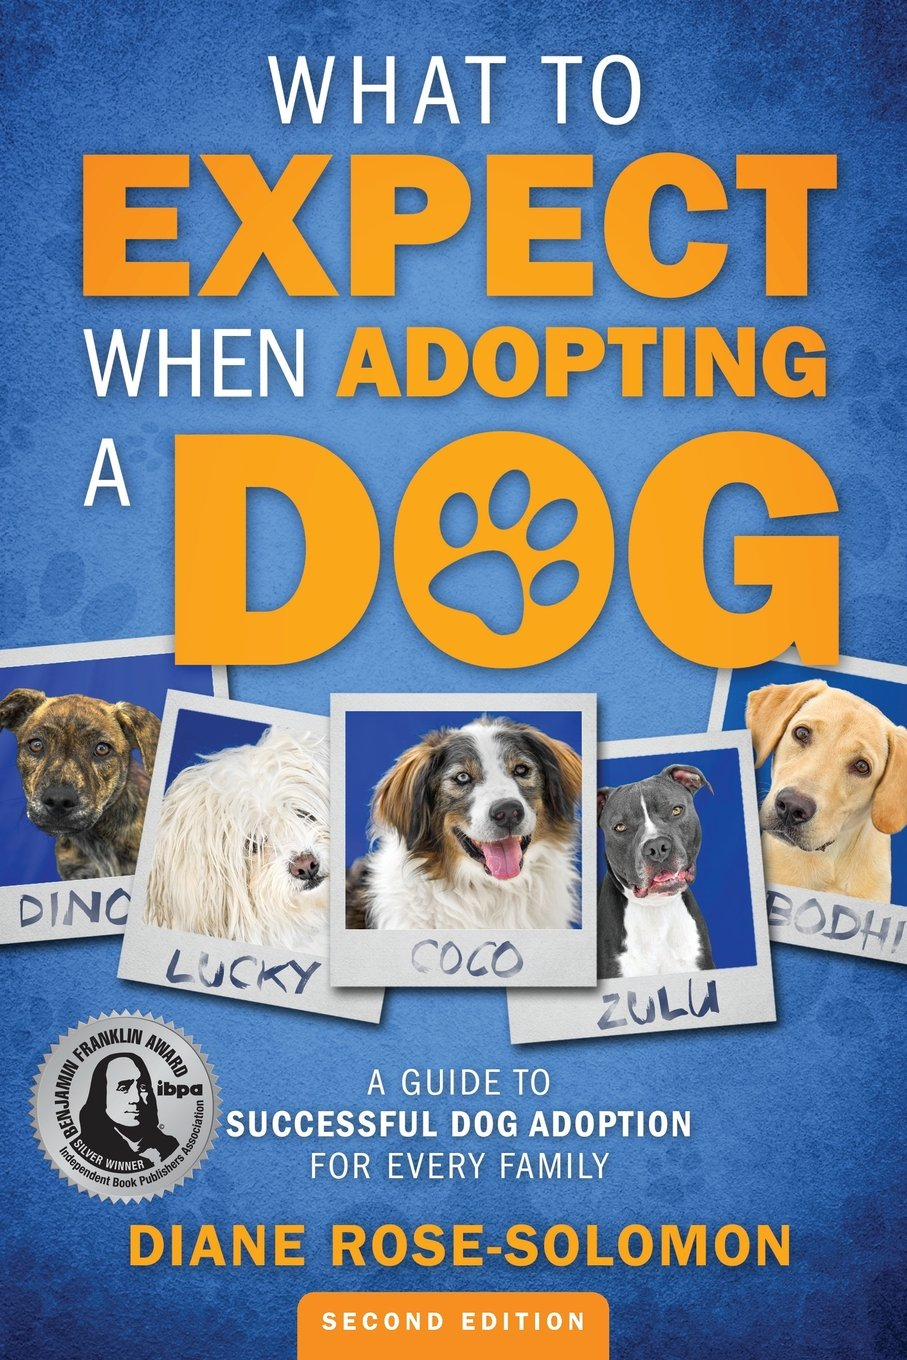 What to Expect When Adopting a Dog: A Guide to Successful Dog Adoption for  Every Family: Diane Rose-Solomon: 9780985769048: Amazon.com: Books